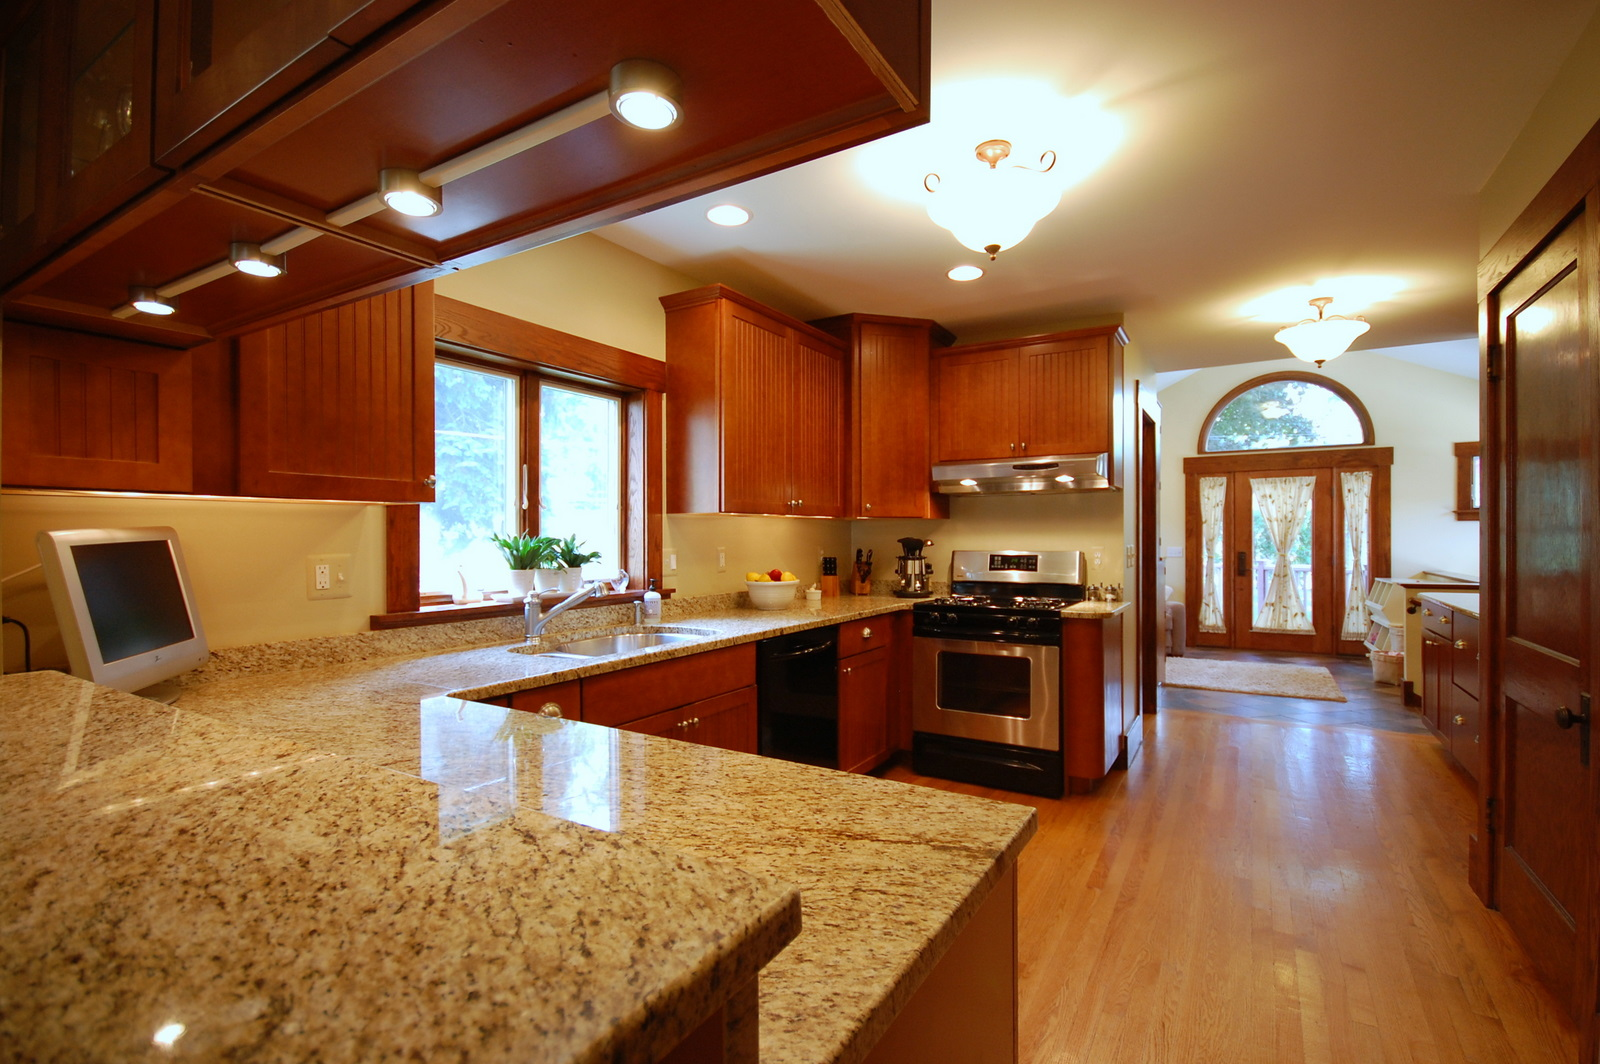 Granite installation jmarvinhandyman Granite kitchen design ideas